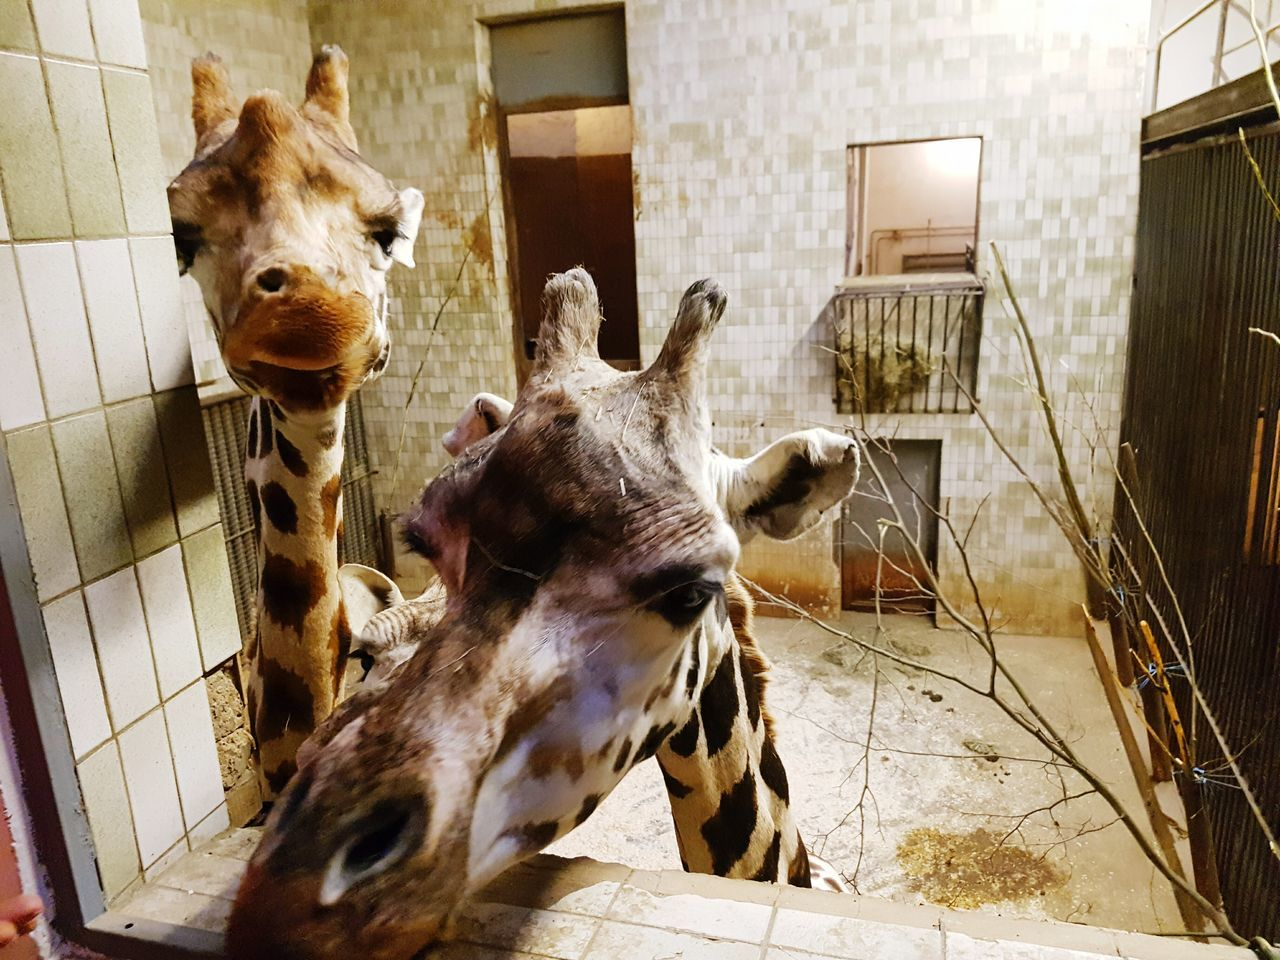 Animal Themes Mammal Domestic Animals Built Structure No People One Animal Pets Cage Outdoors Day Architecture Antler Giraffe